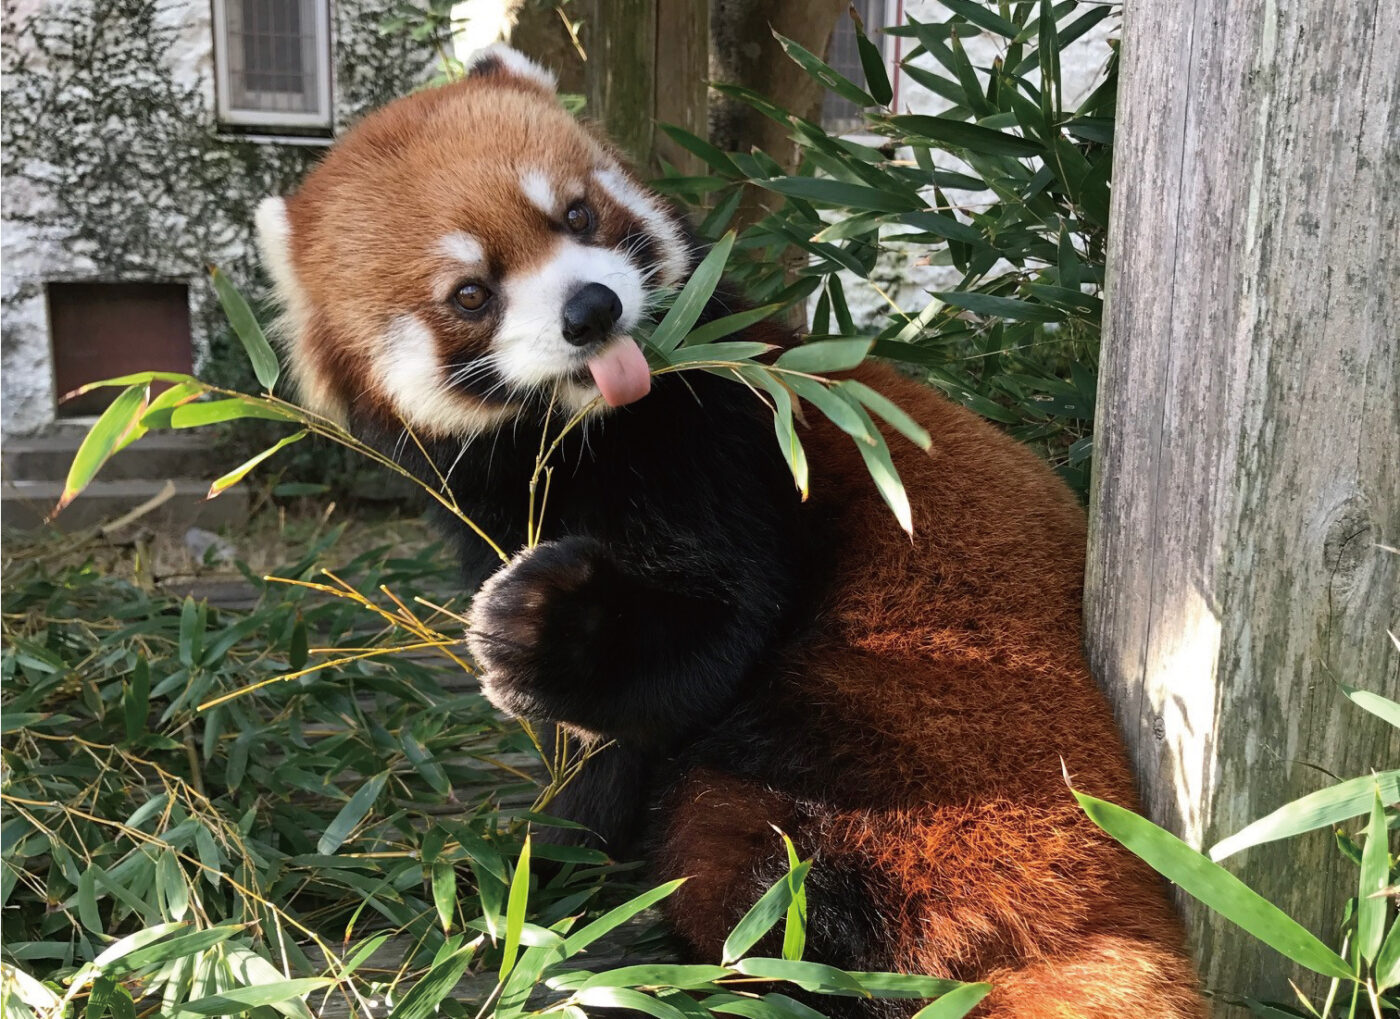 Red panda spotting guide